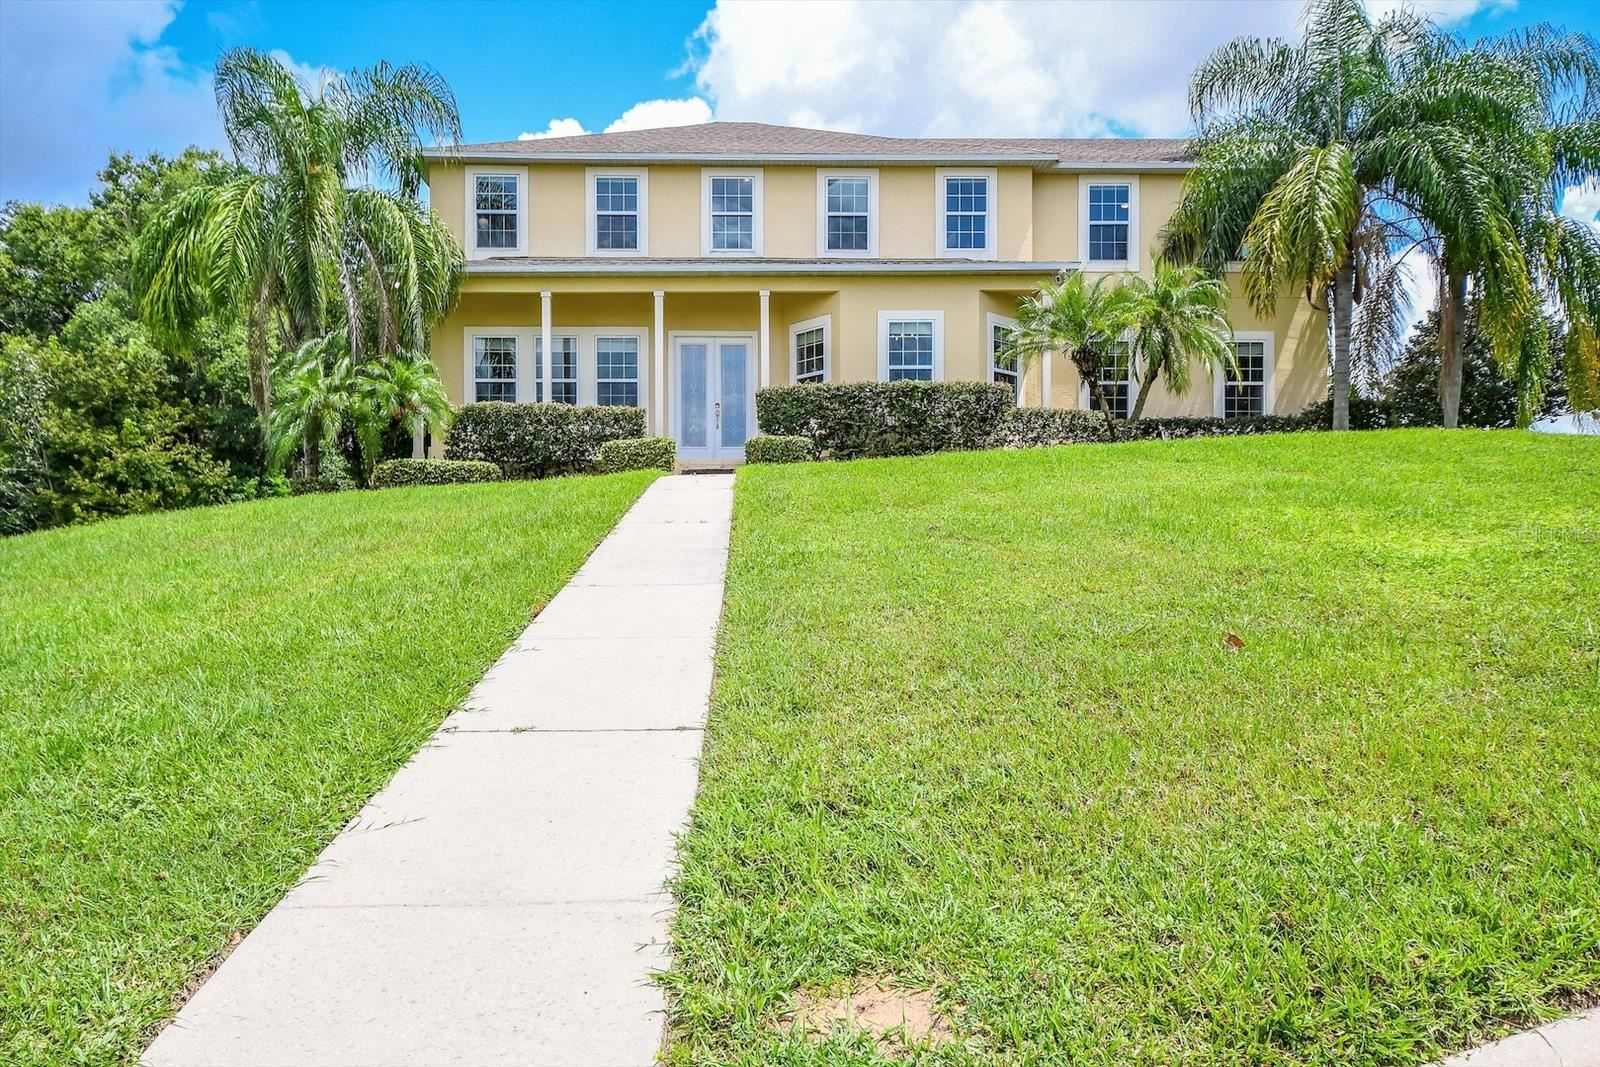 12627 CROWN POINT CIRCLE, Clermont, FL 34711 - #: O5971514